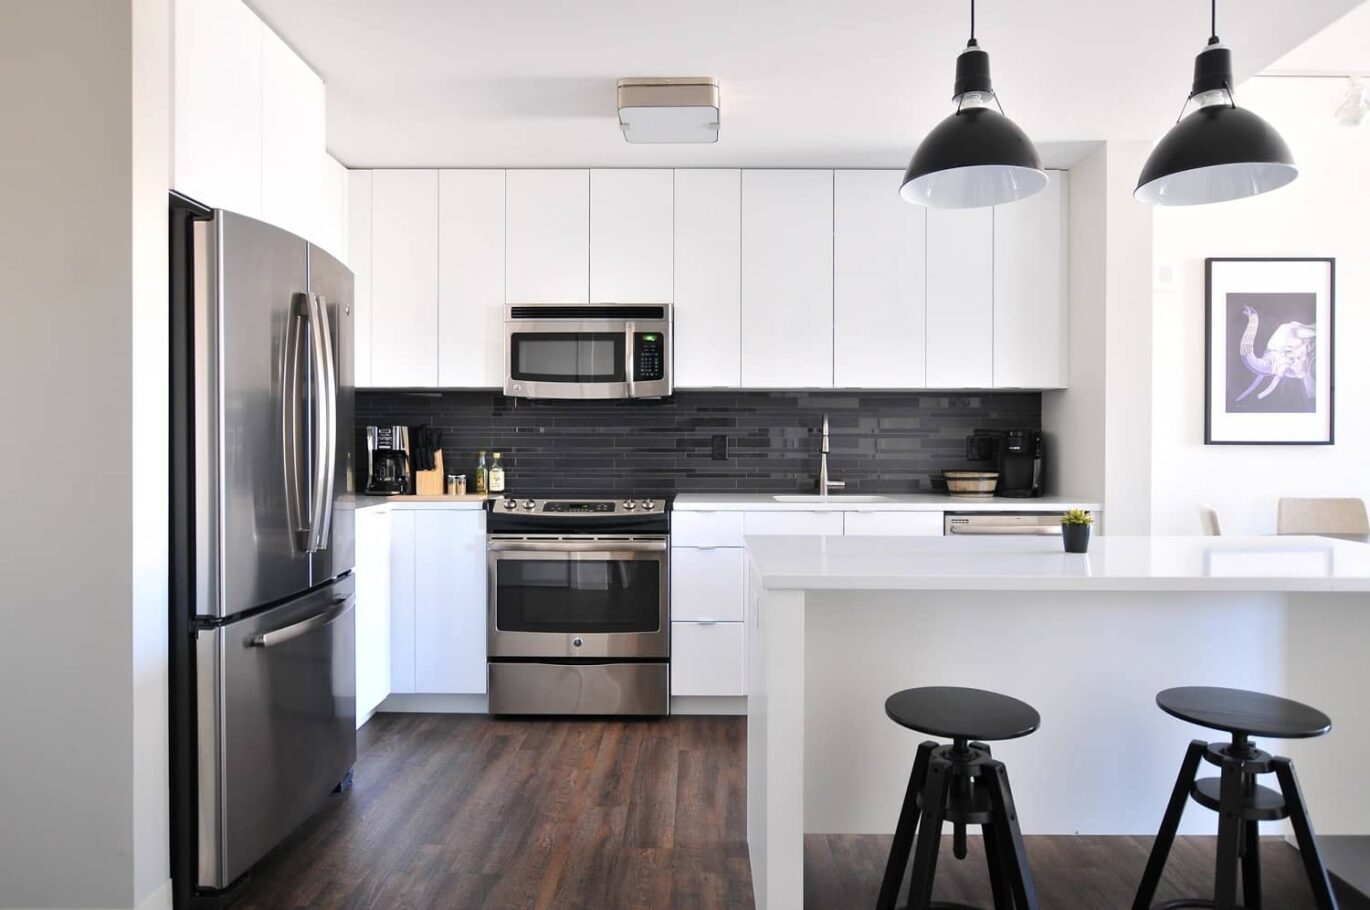 A very clean home showing dining and kitchen area